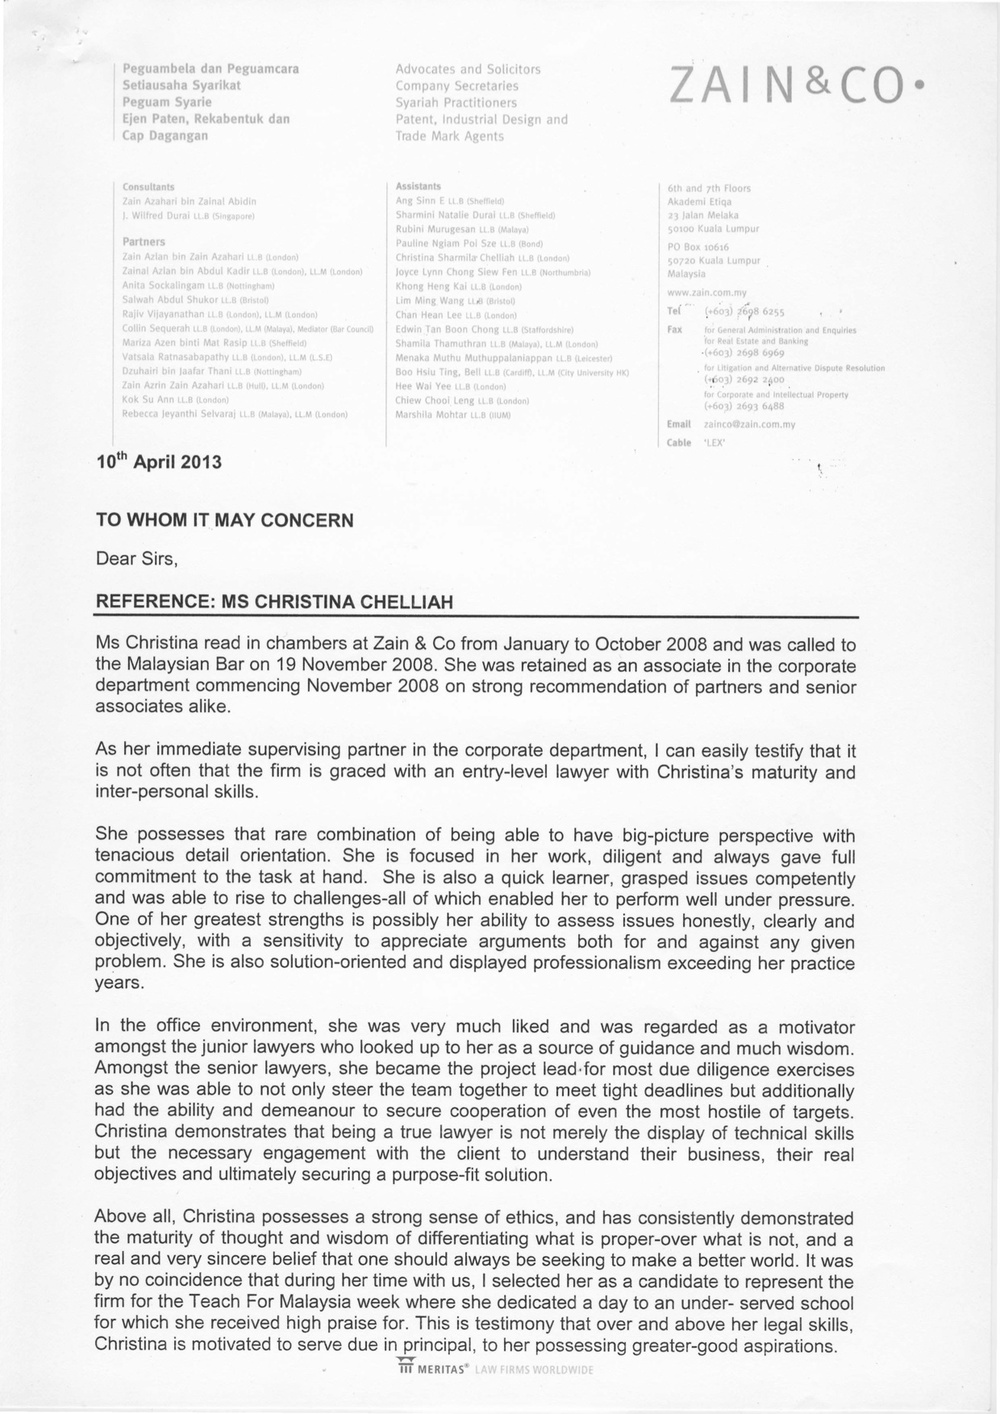 2013 - Legal - Zain & Co - Reference Letter.jpg